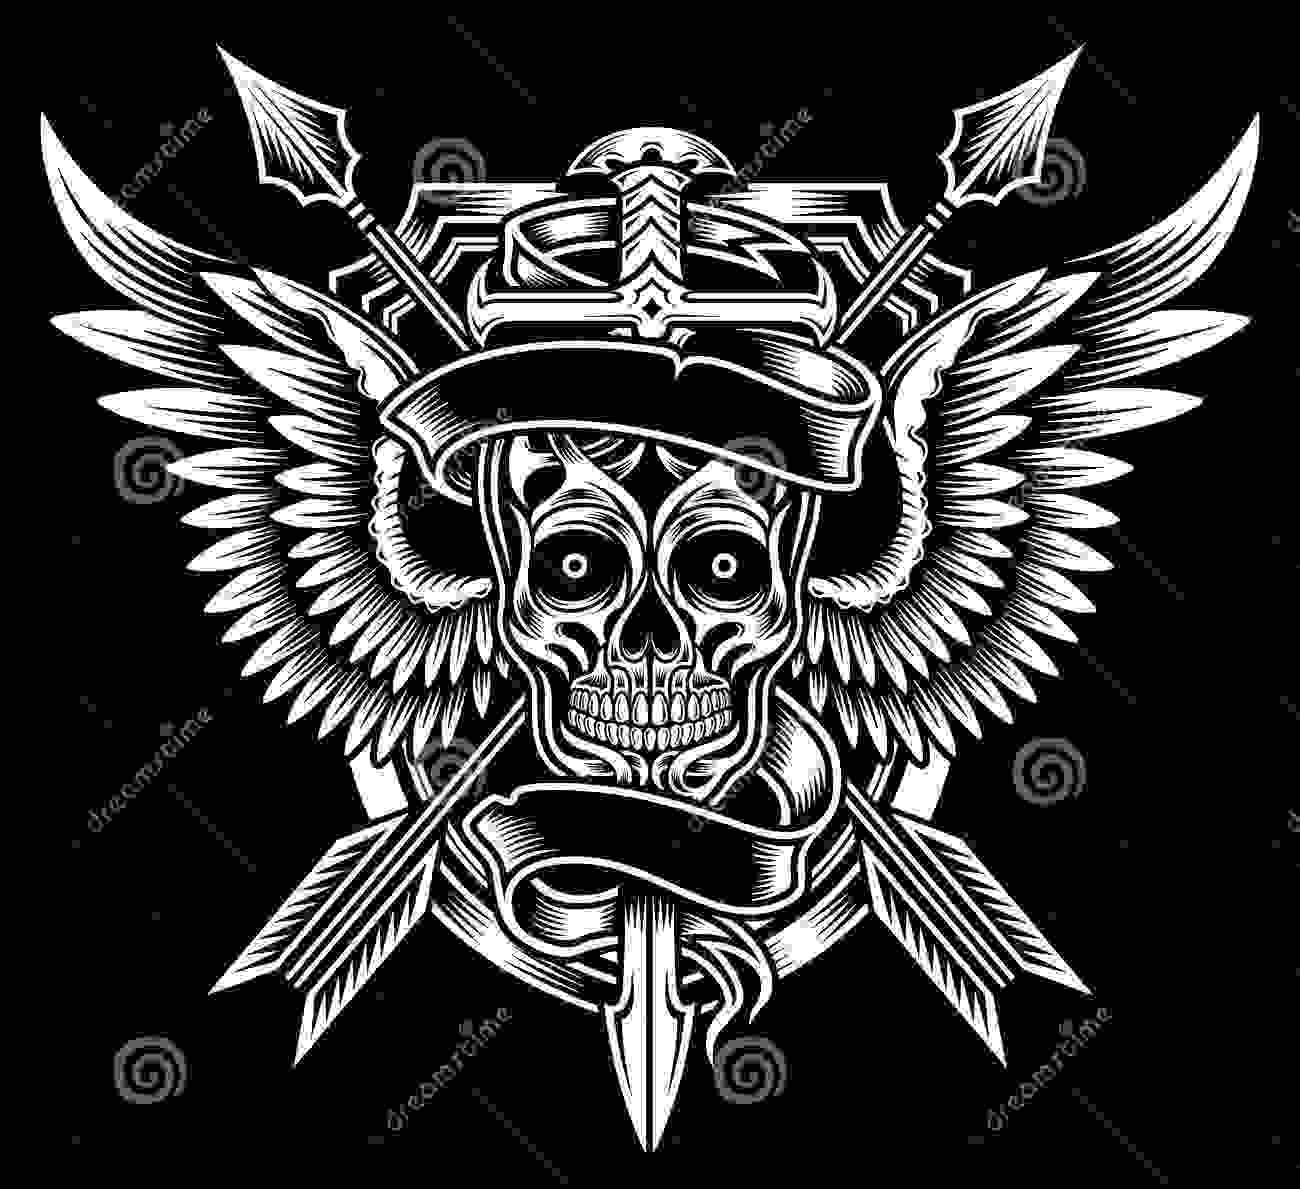 Winged Skull Sword Arrows Fully Editable Tattoo Designs